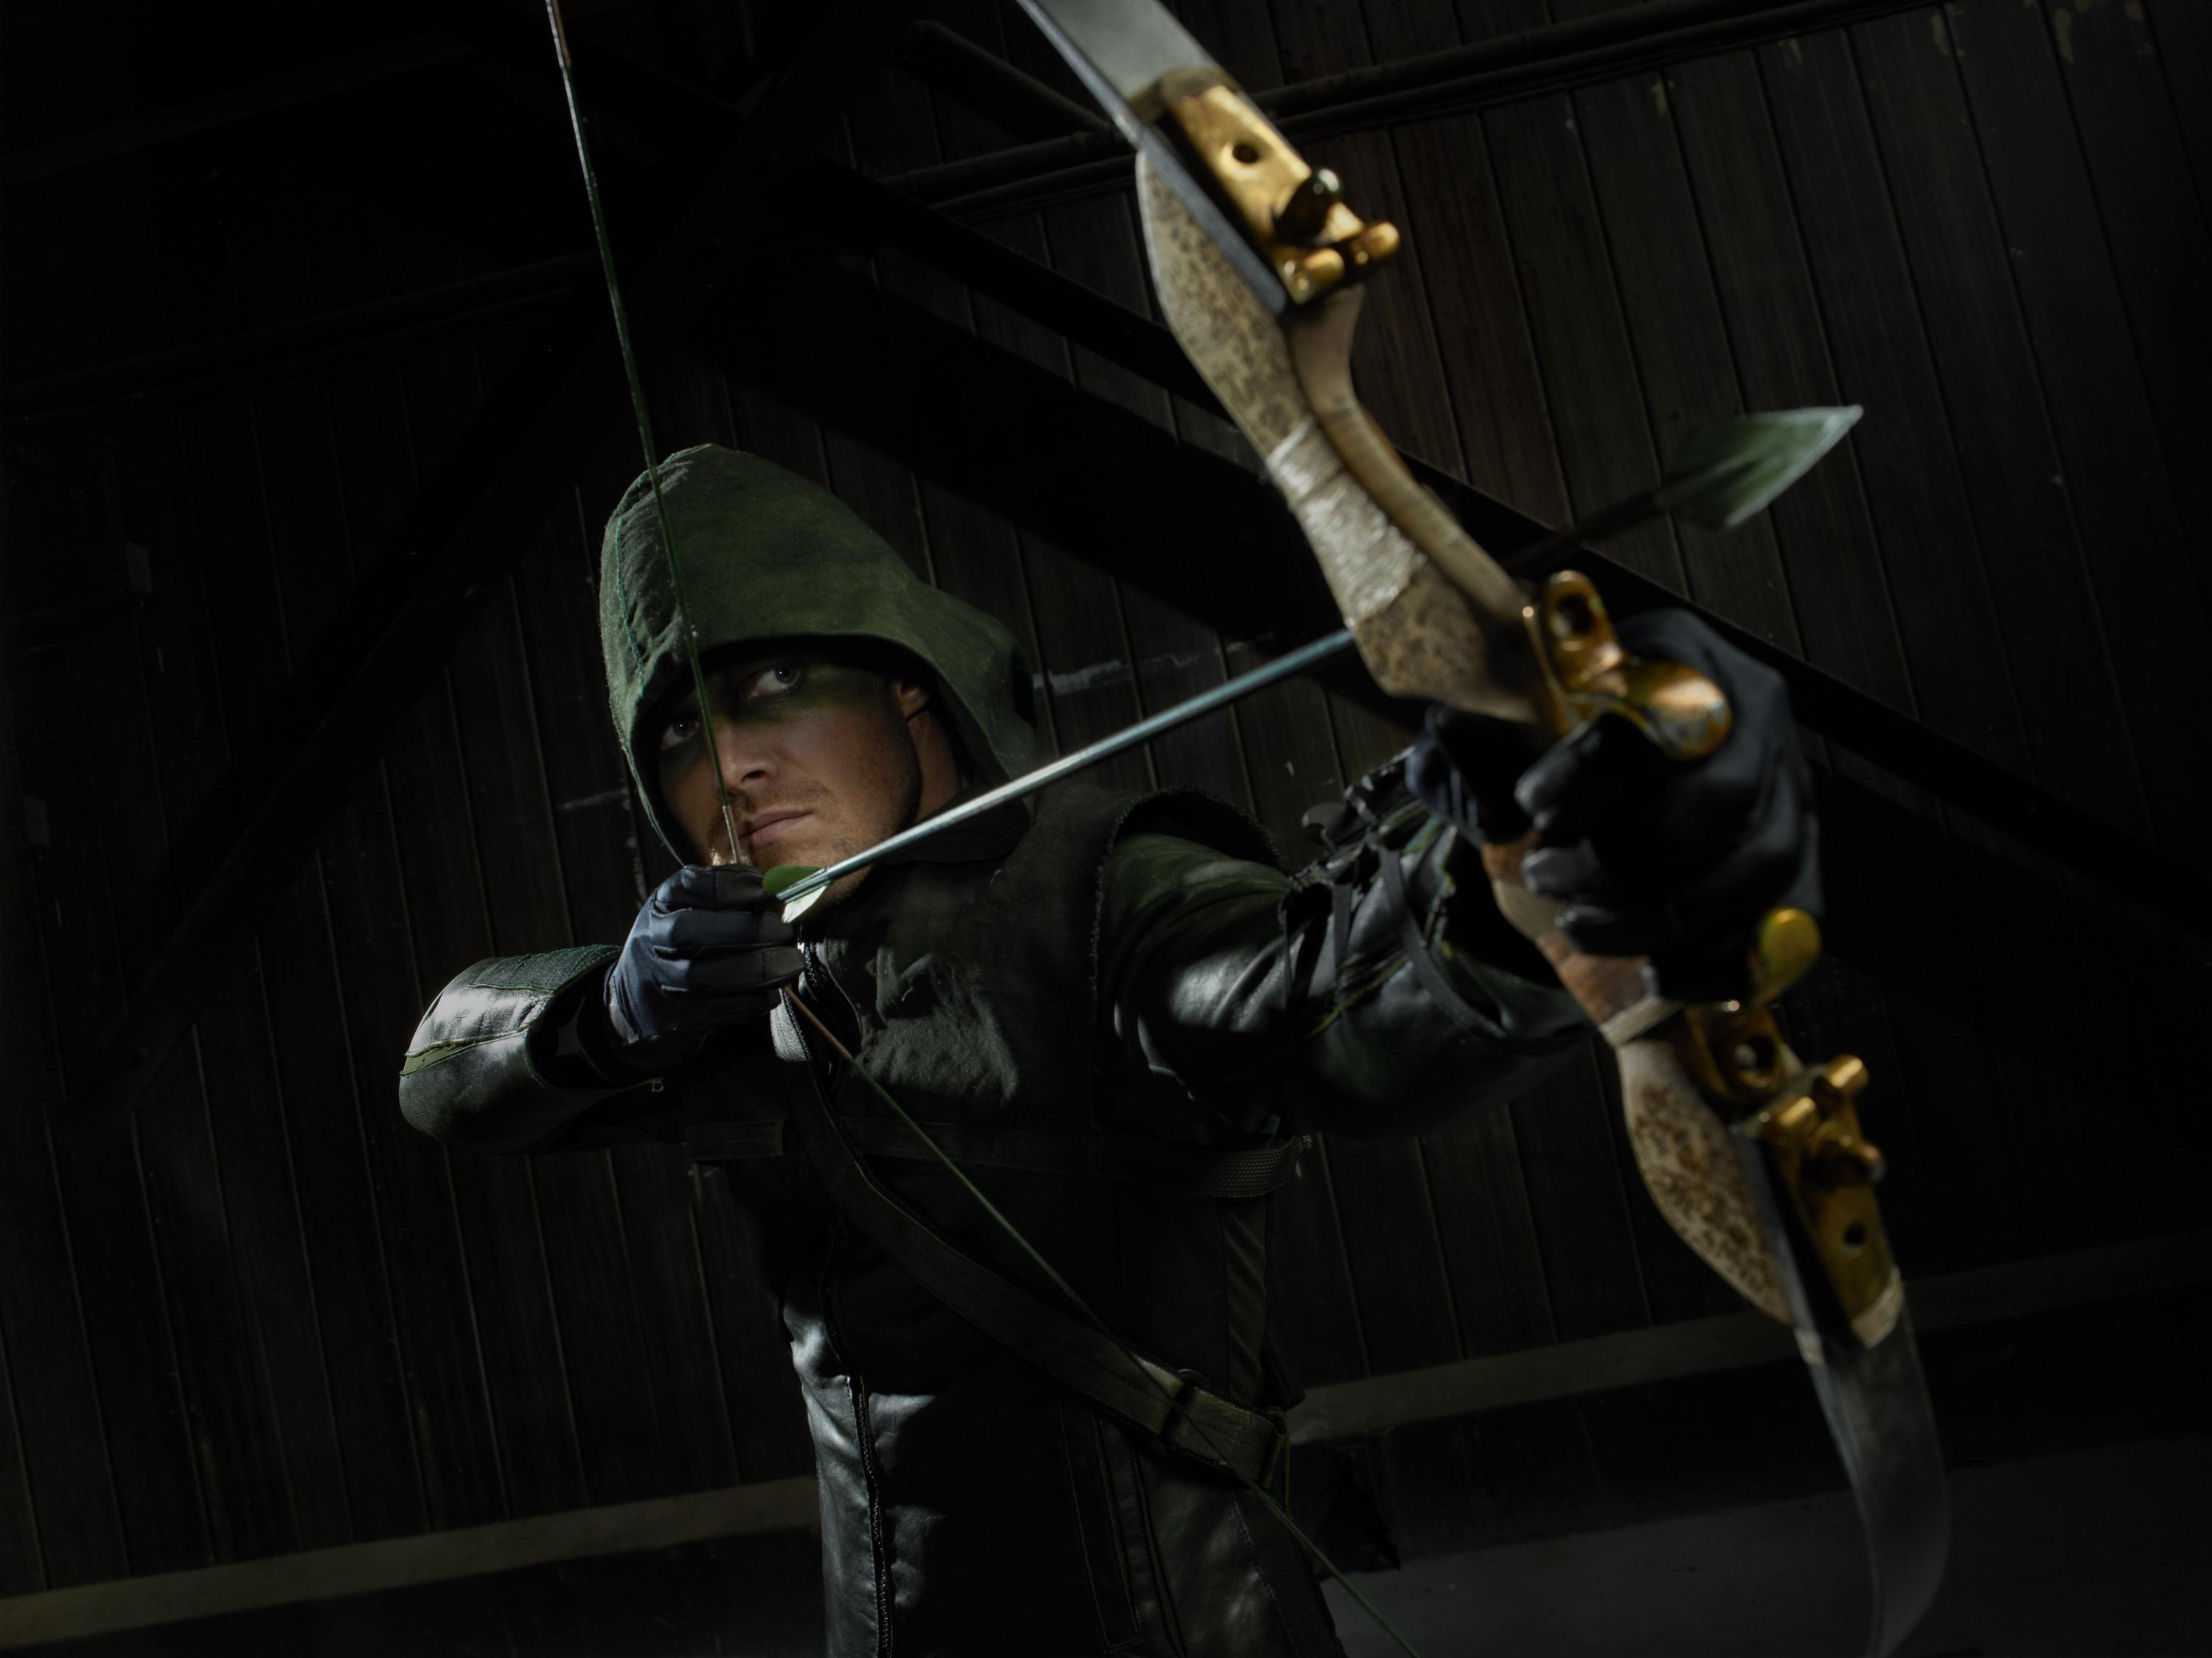 From Comic to TV Arrow as an Adaptation of Green Arrow 3000x2248